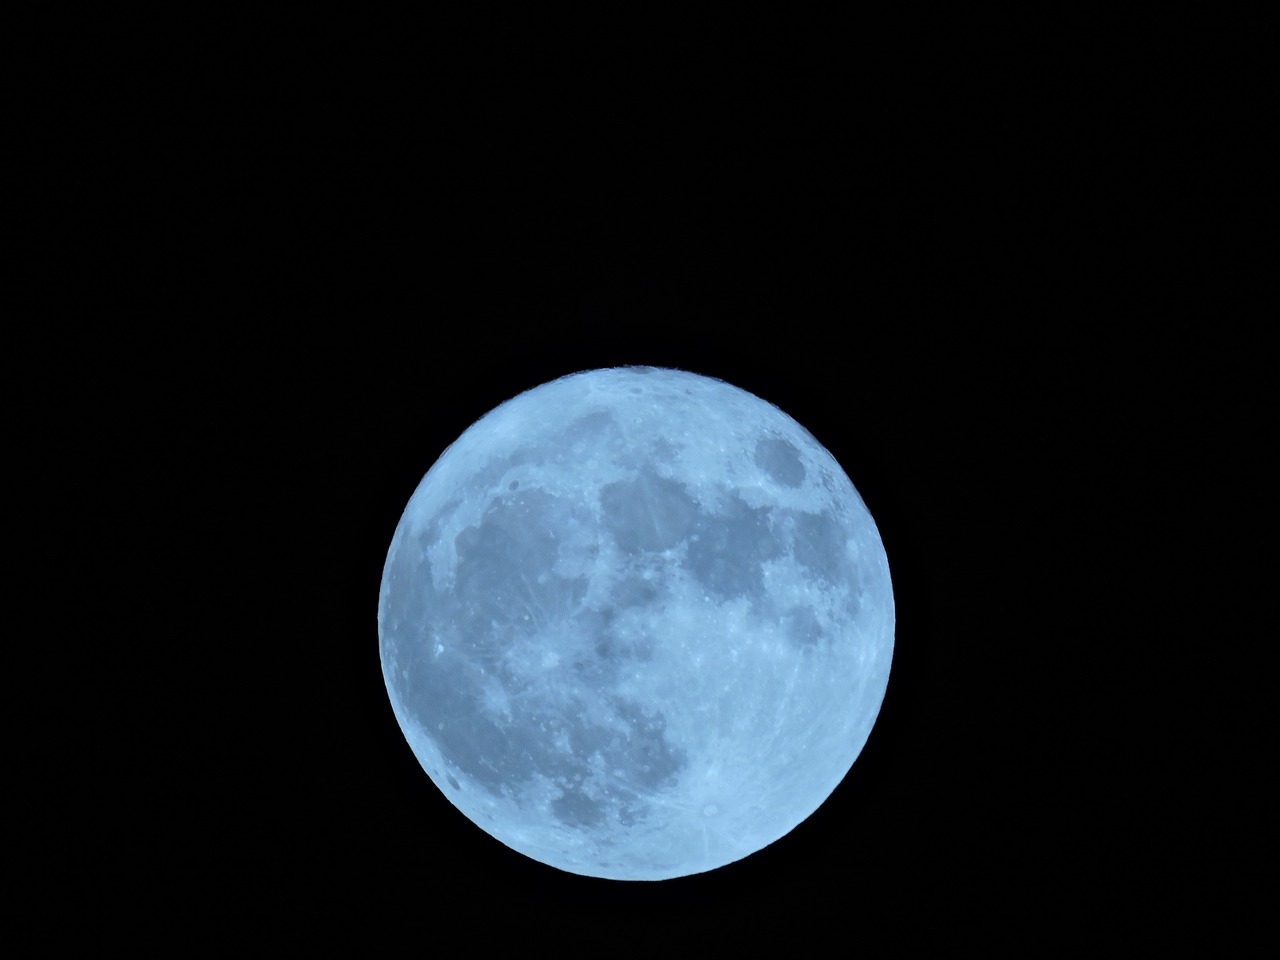 luna,super,bright,november,full moon,event,exceptional,free pictures, free photos, free images, royalty free, free illustrations, public domain